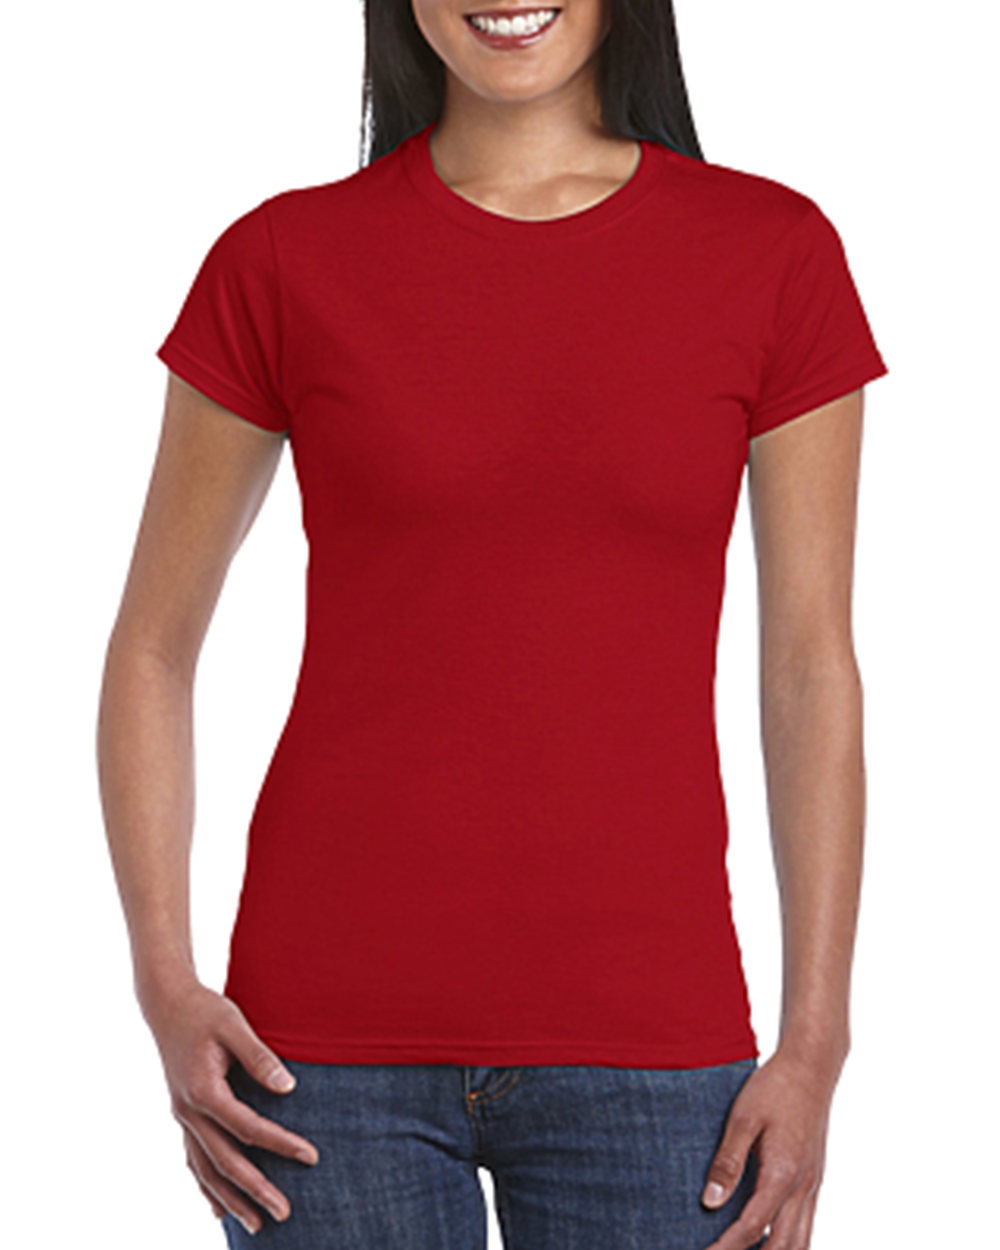 Ladies' Softstyle T-shirt